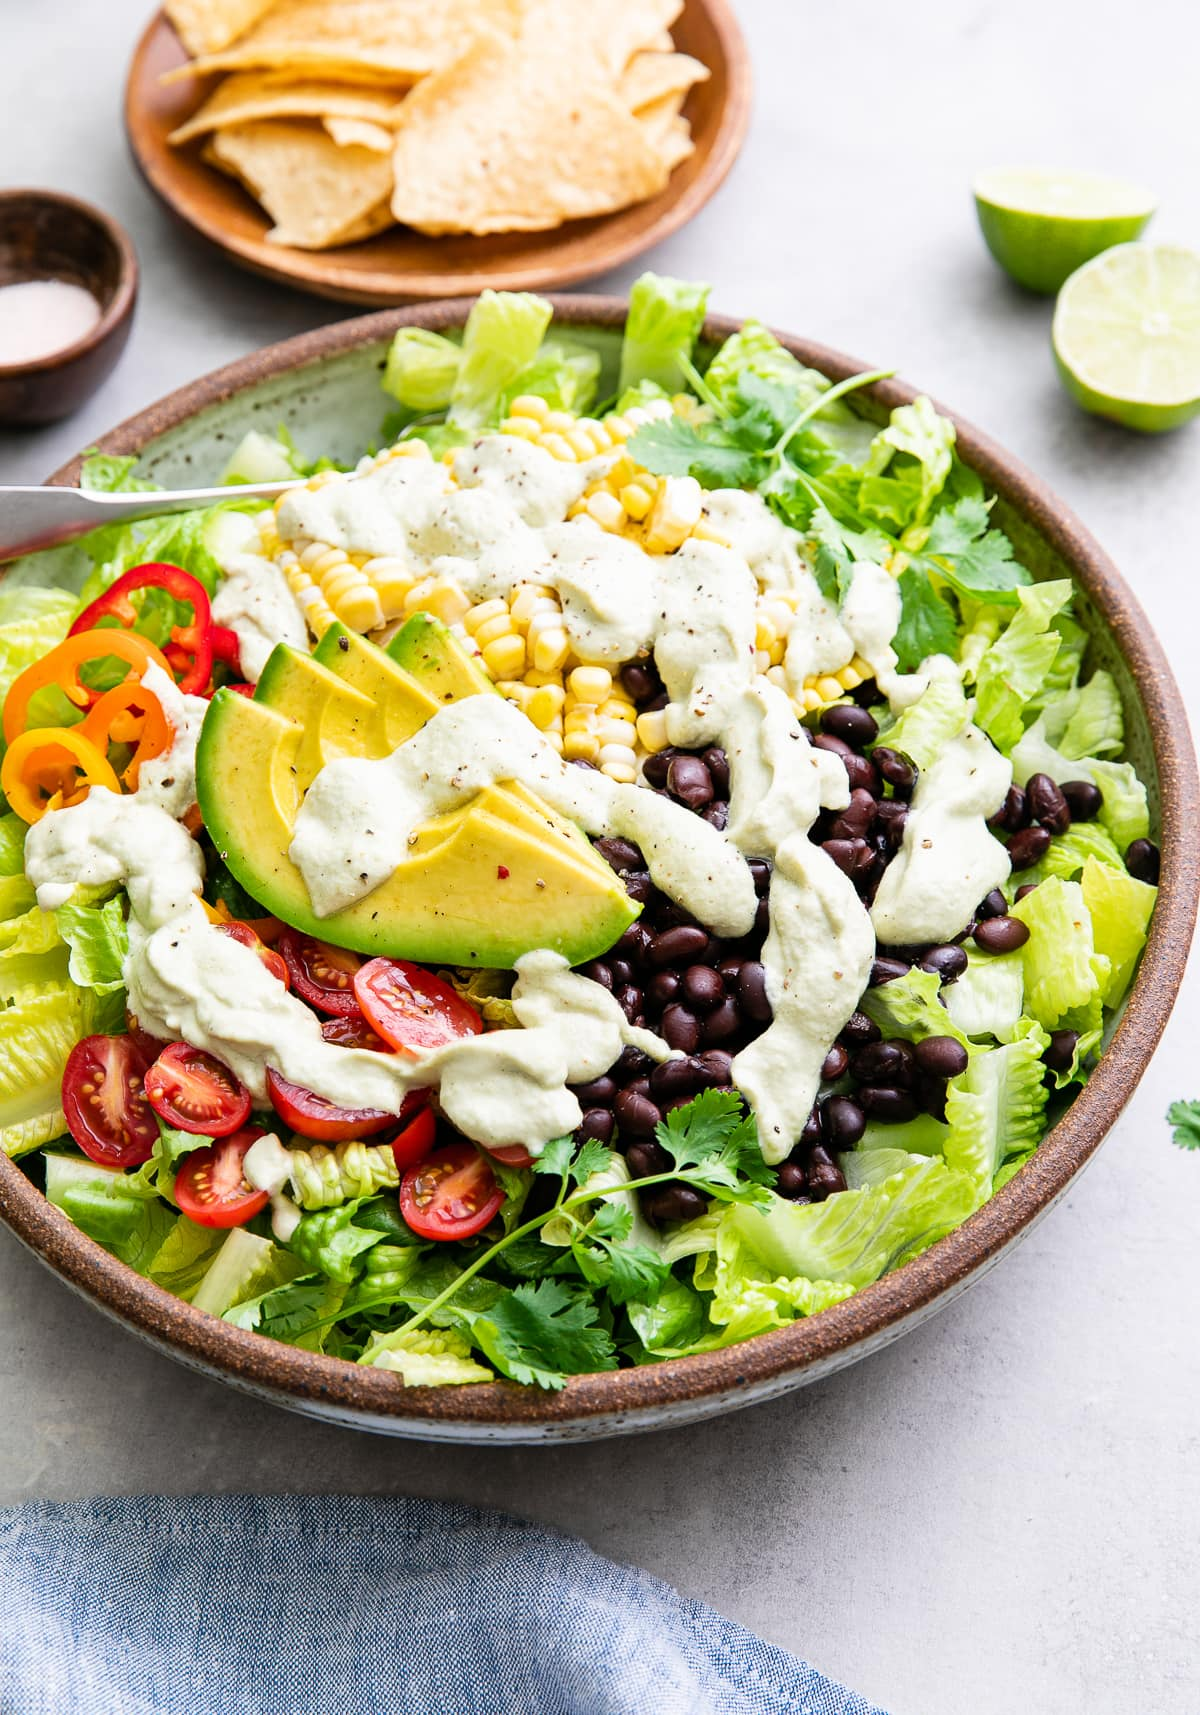 side angle view of freshly made southwestern salad in a bowl with items surrounding.